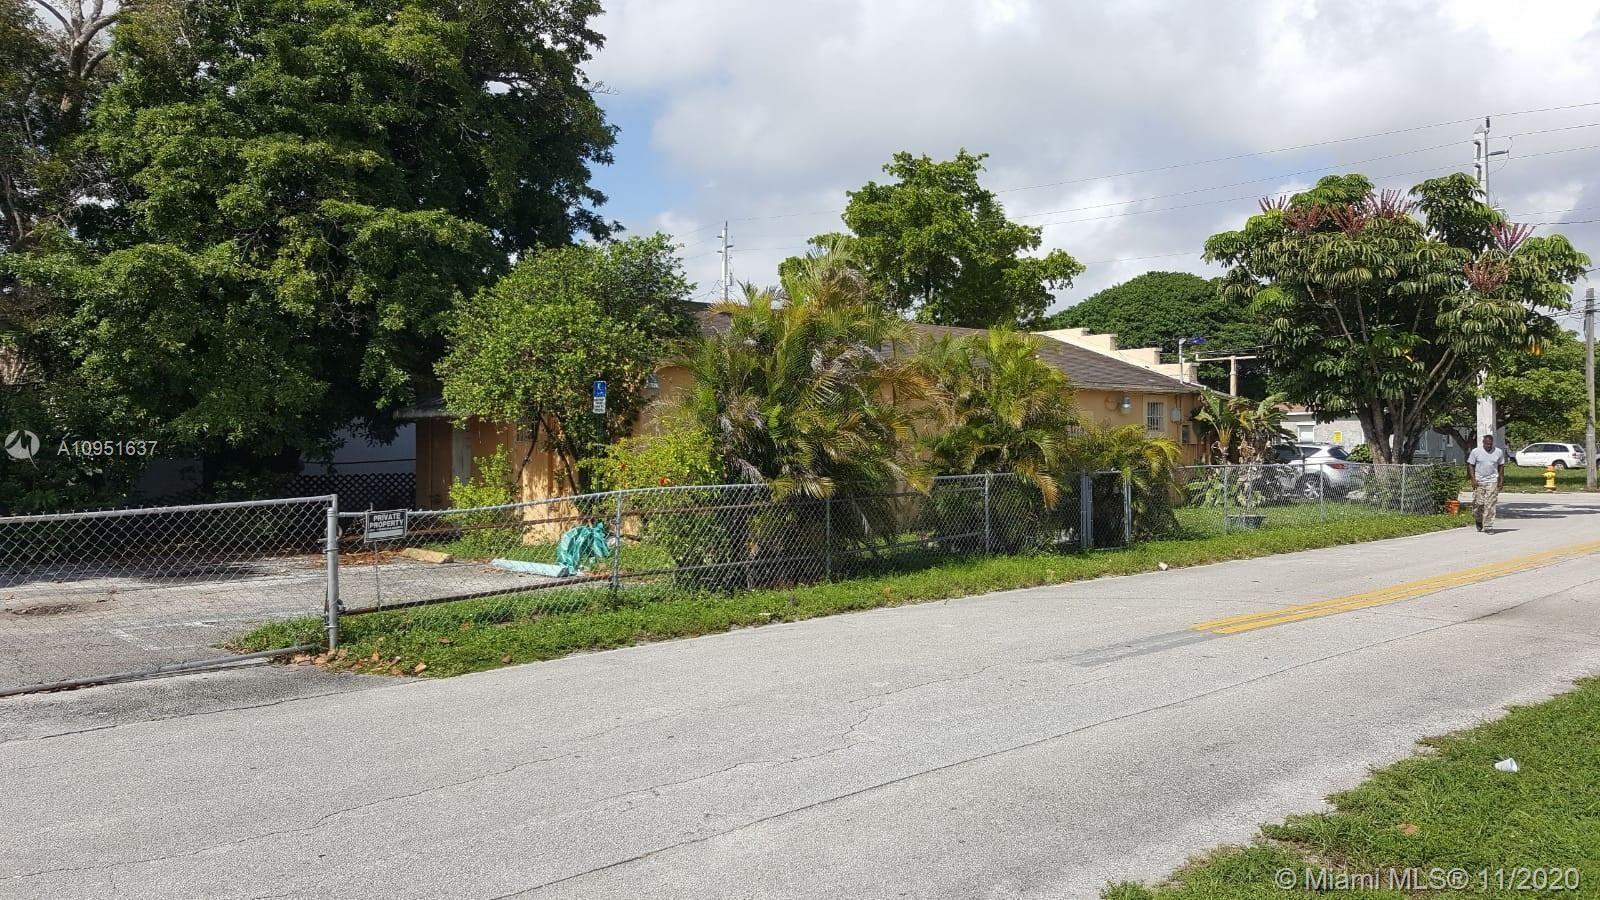 ZONED DUPLEX THIS PROPERTY HAS NEW ROOF AND NEED FULL REHAB INSIDE.. CAN BE SINGLE FAMILY OR DUPLEX